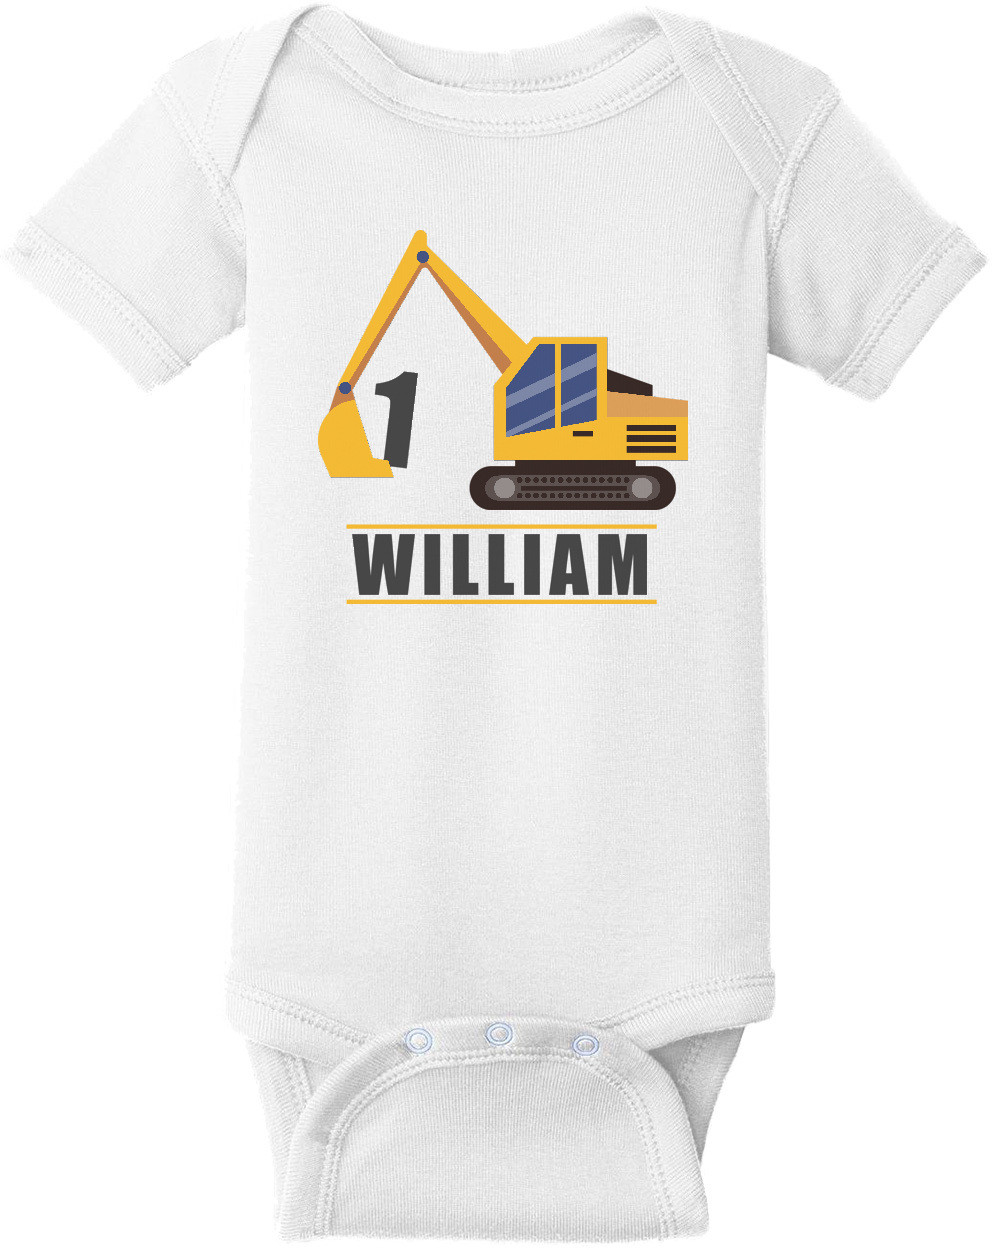 Caterpiller Construction Boy's Birthday T-Shirt - Happy Birthday. Custom T-Shirt with your boys name and age. Personalized Birthday T-Shirt